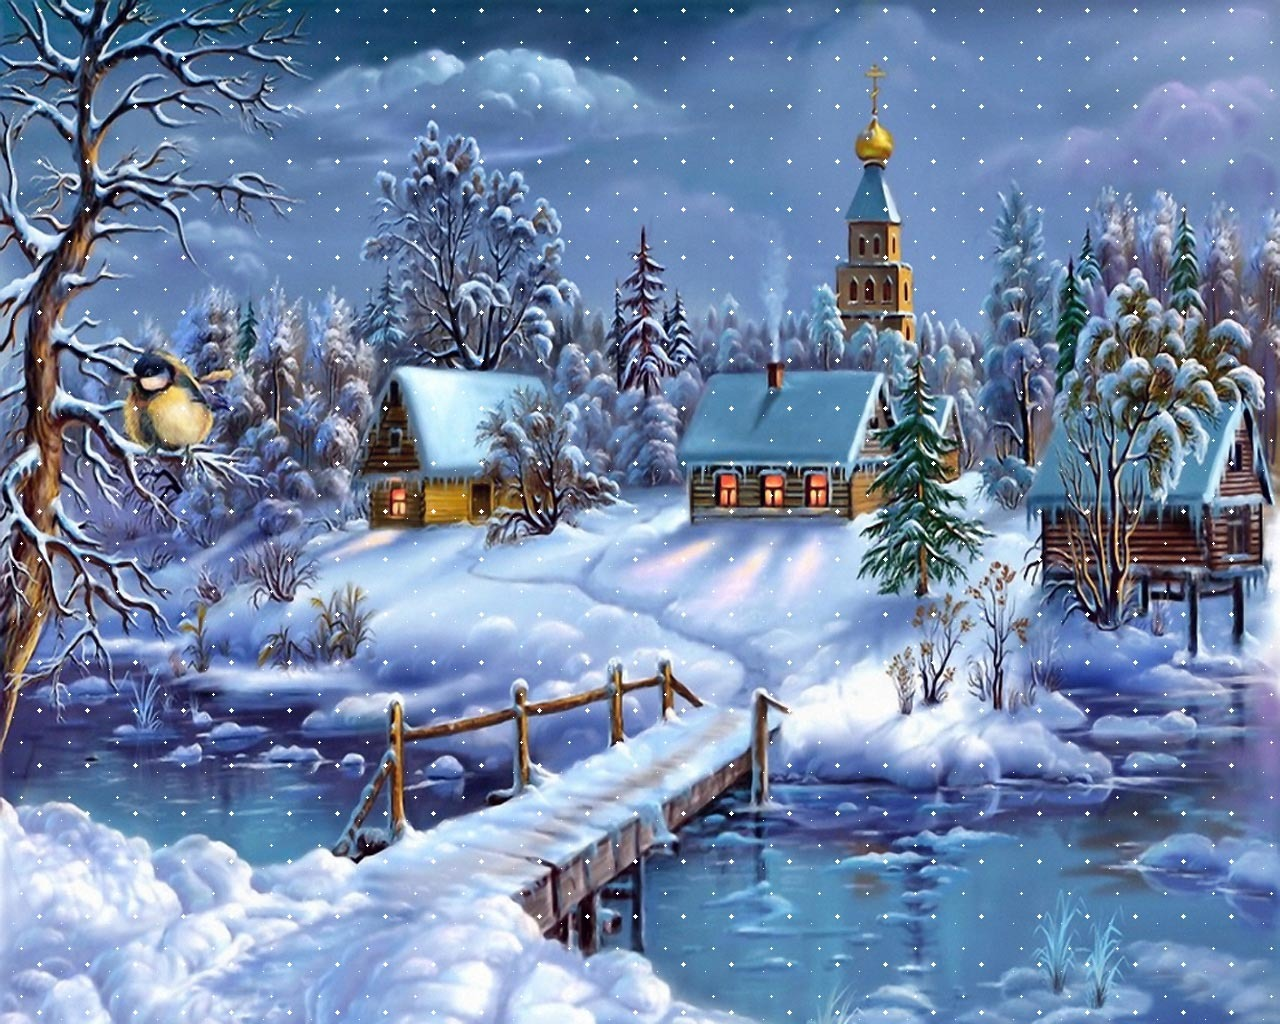 desktop wallpapersblogspotcom201209free animated winter desktop 1280x1024